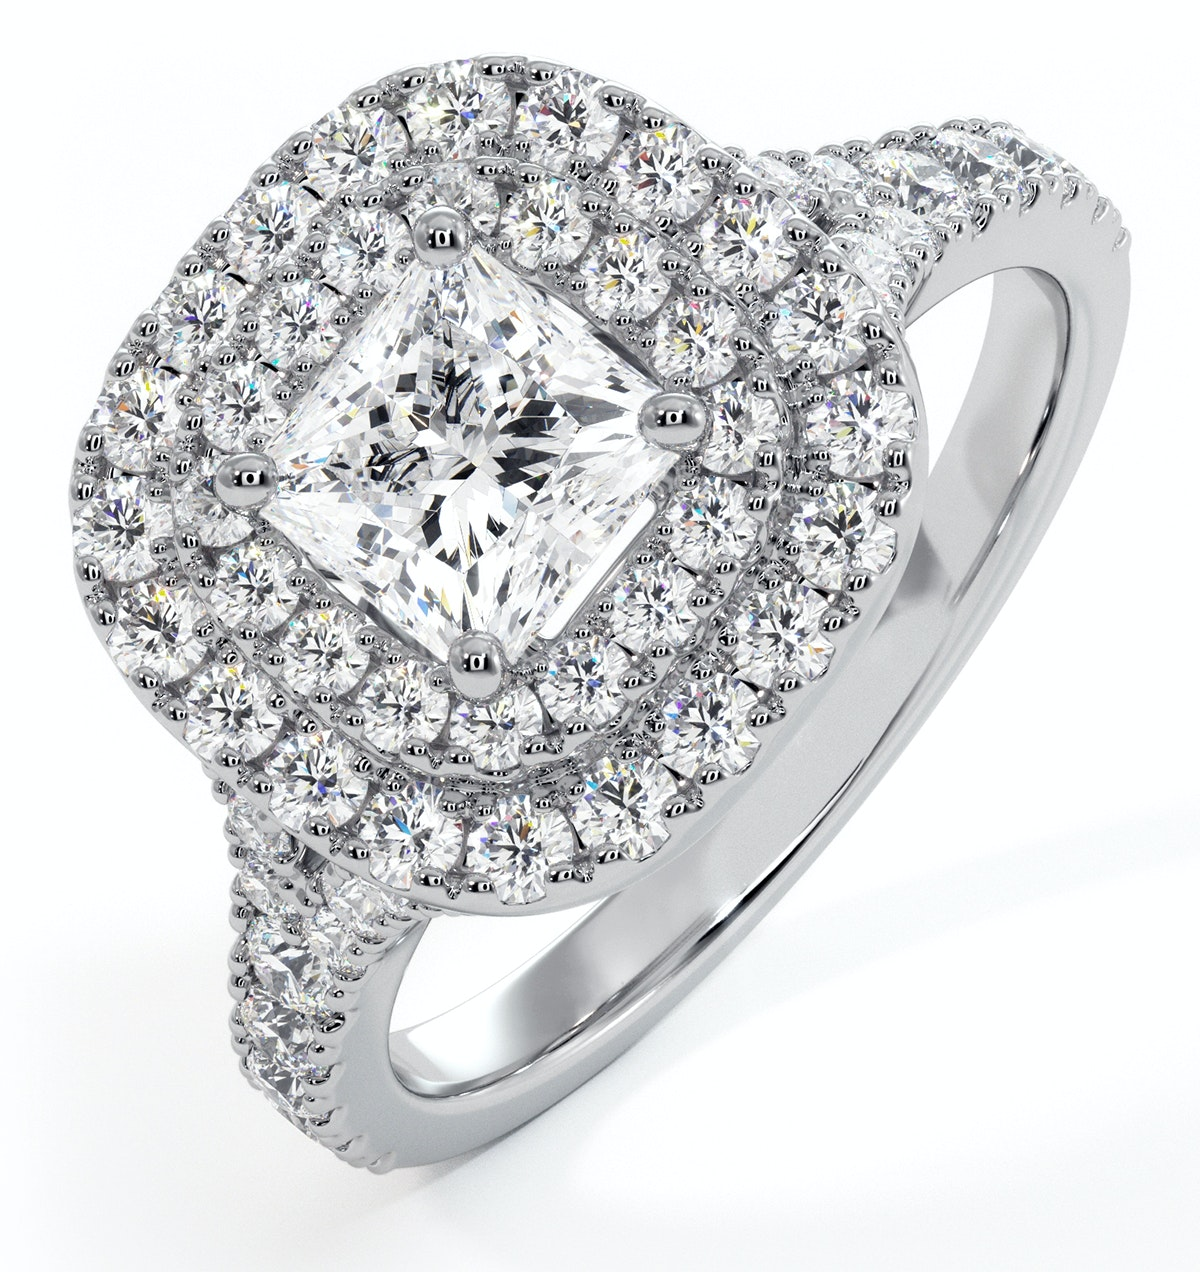 Cleopatra GIA Diamond Halo Engagement Ring in Platinum 1.45ct G/SI2